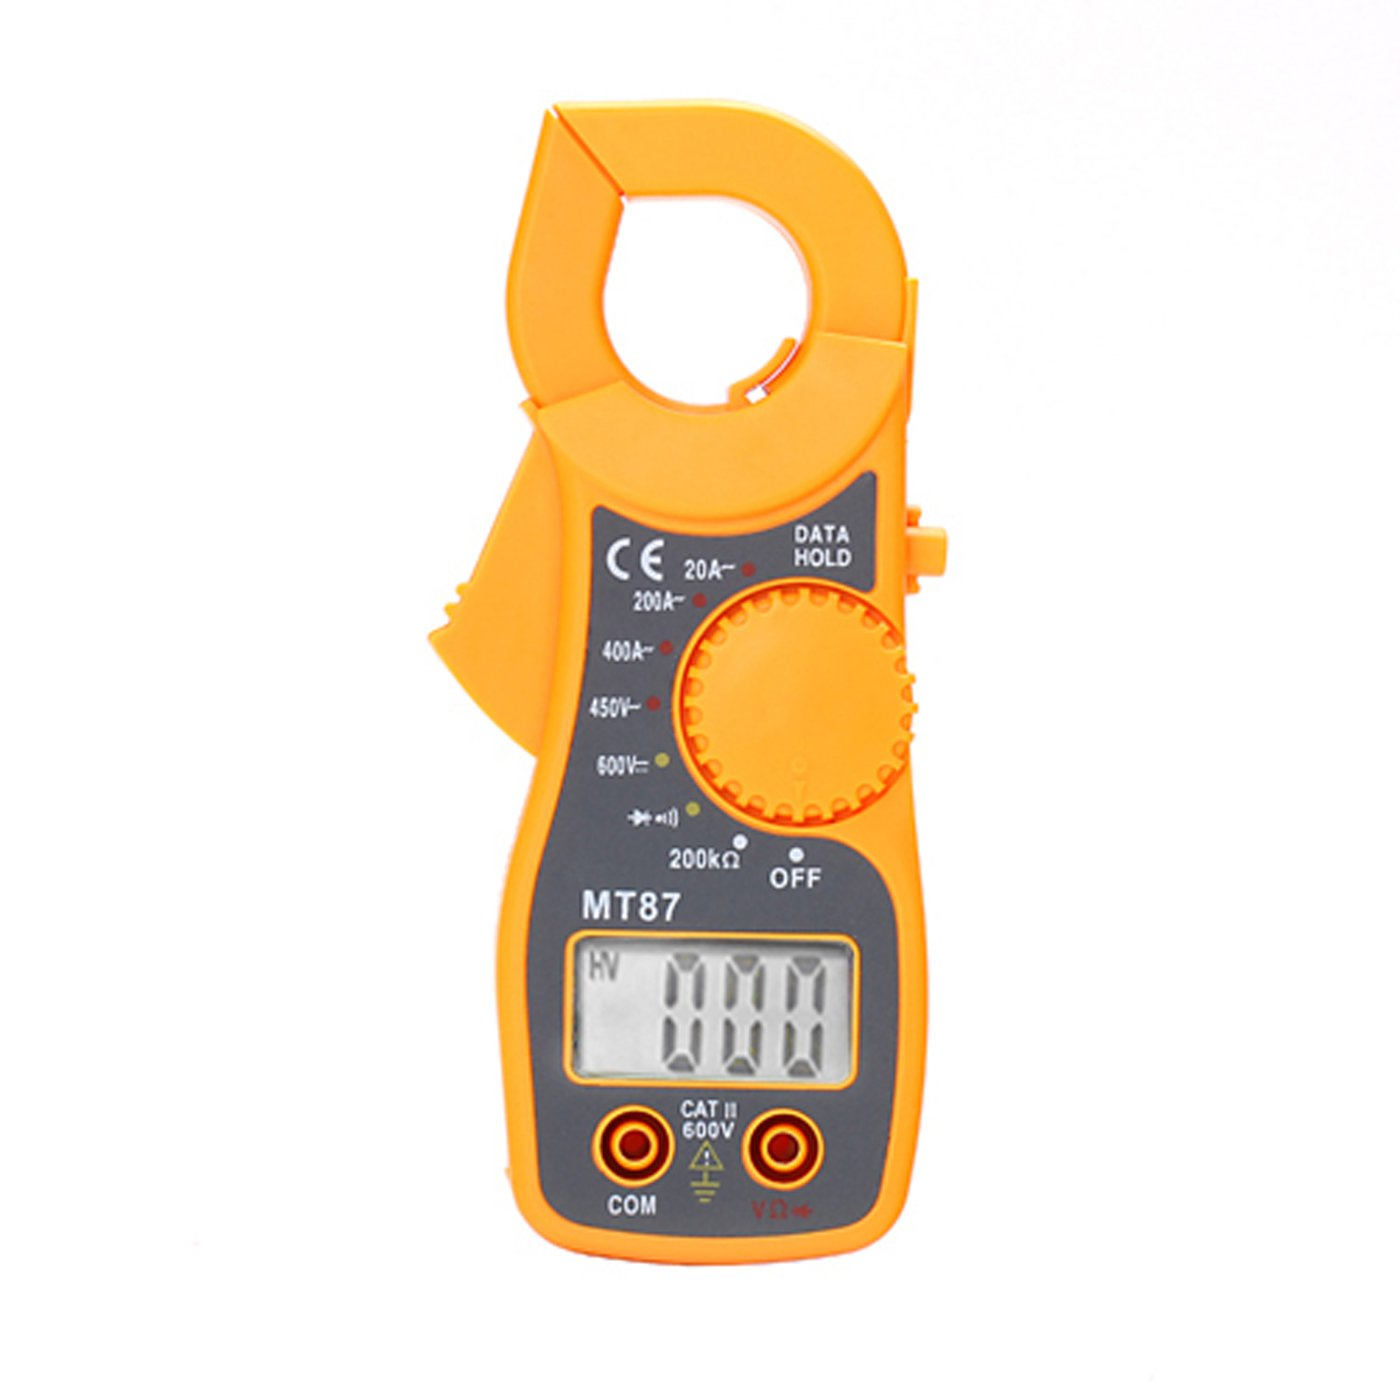 HDE Portable AC/DC Digital Voltage Multimeter Tester Electronic Clamp OHM Amp Meter with LCD Display